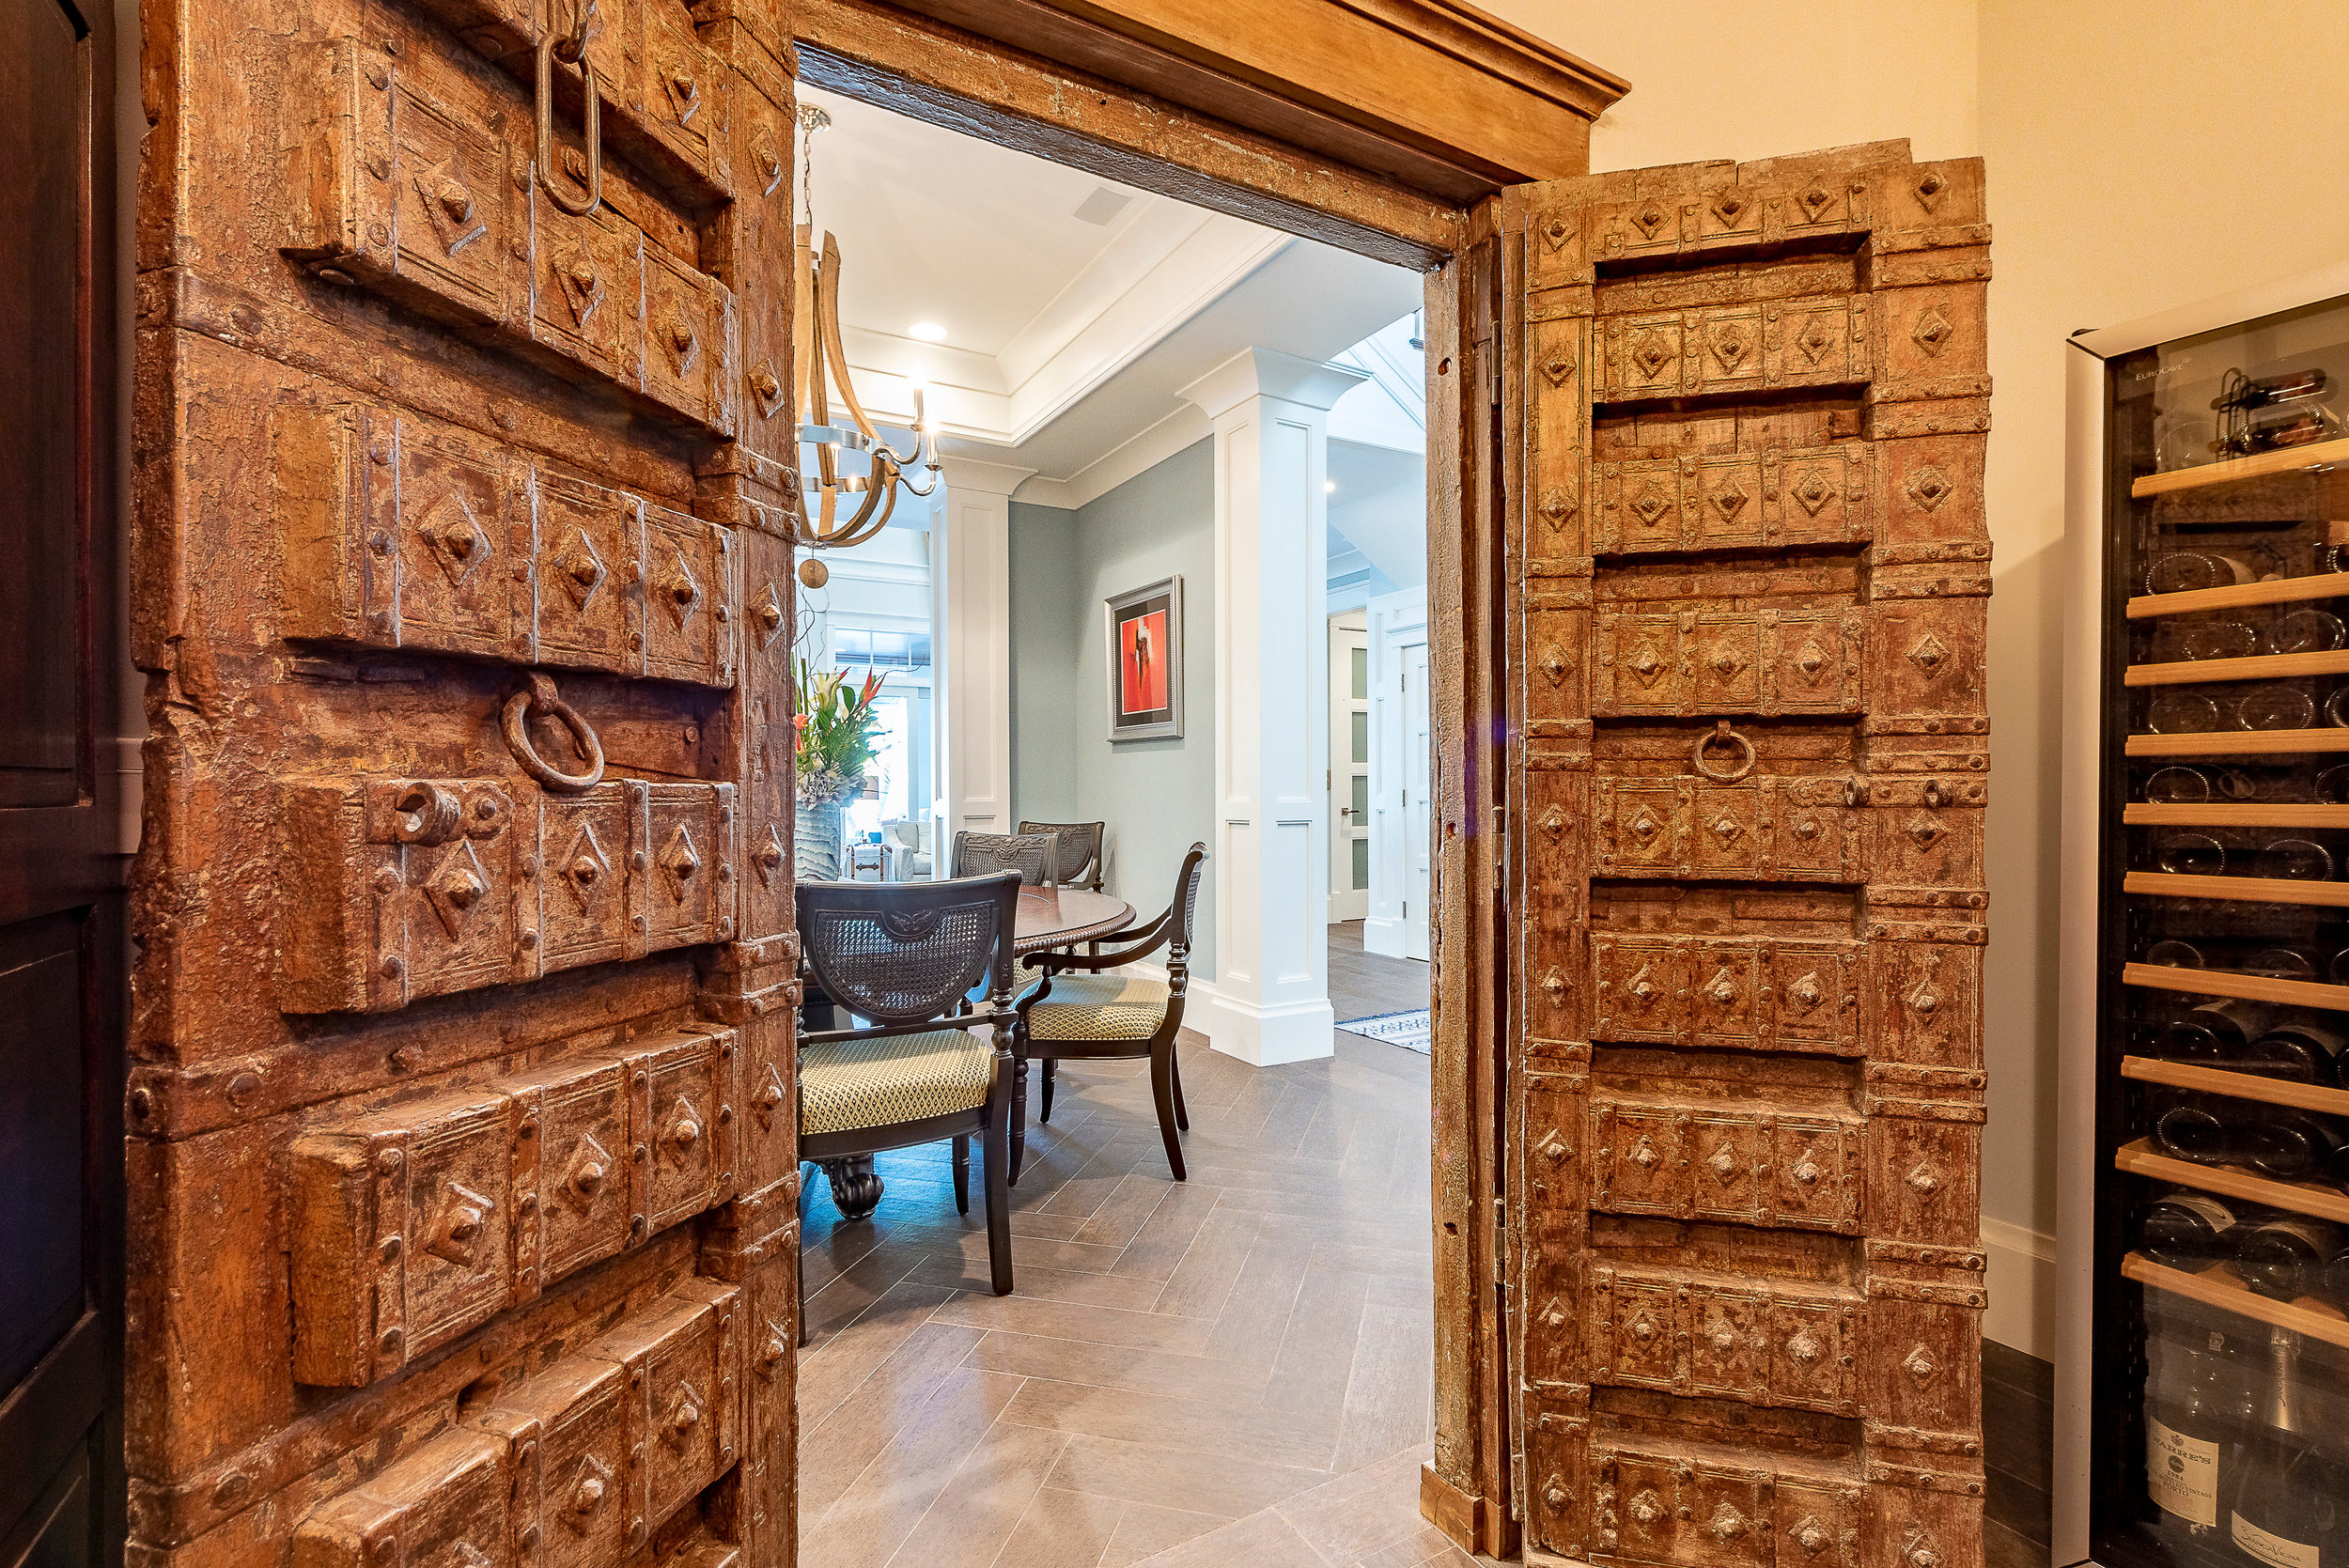 Check Out This Fort Lauderdale Estate With A Secret Room Asking $5.85 Million